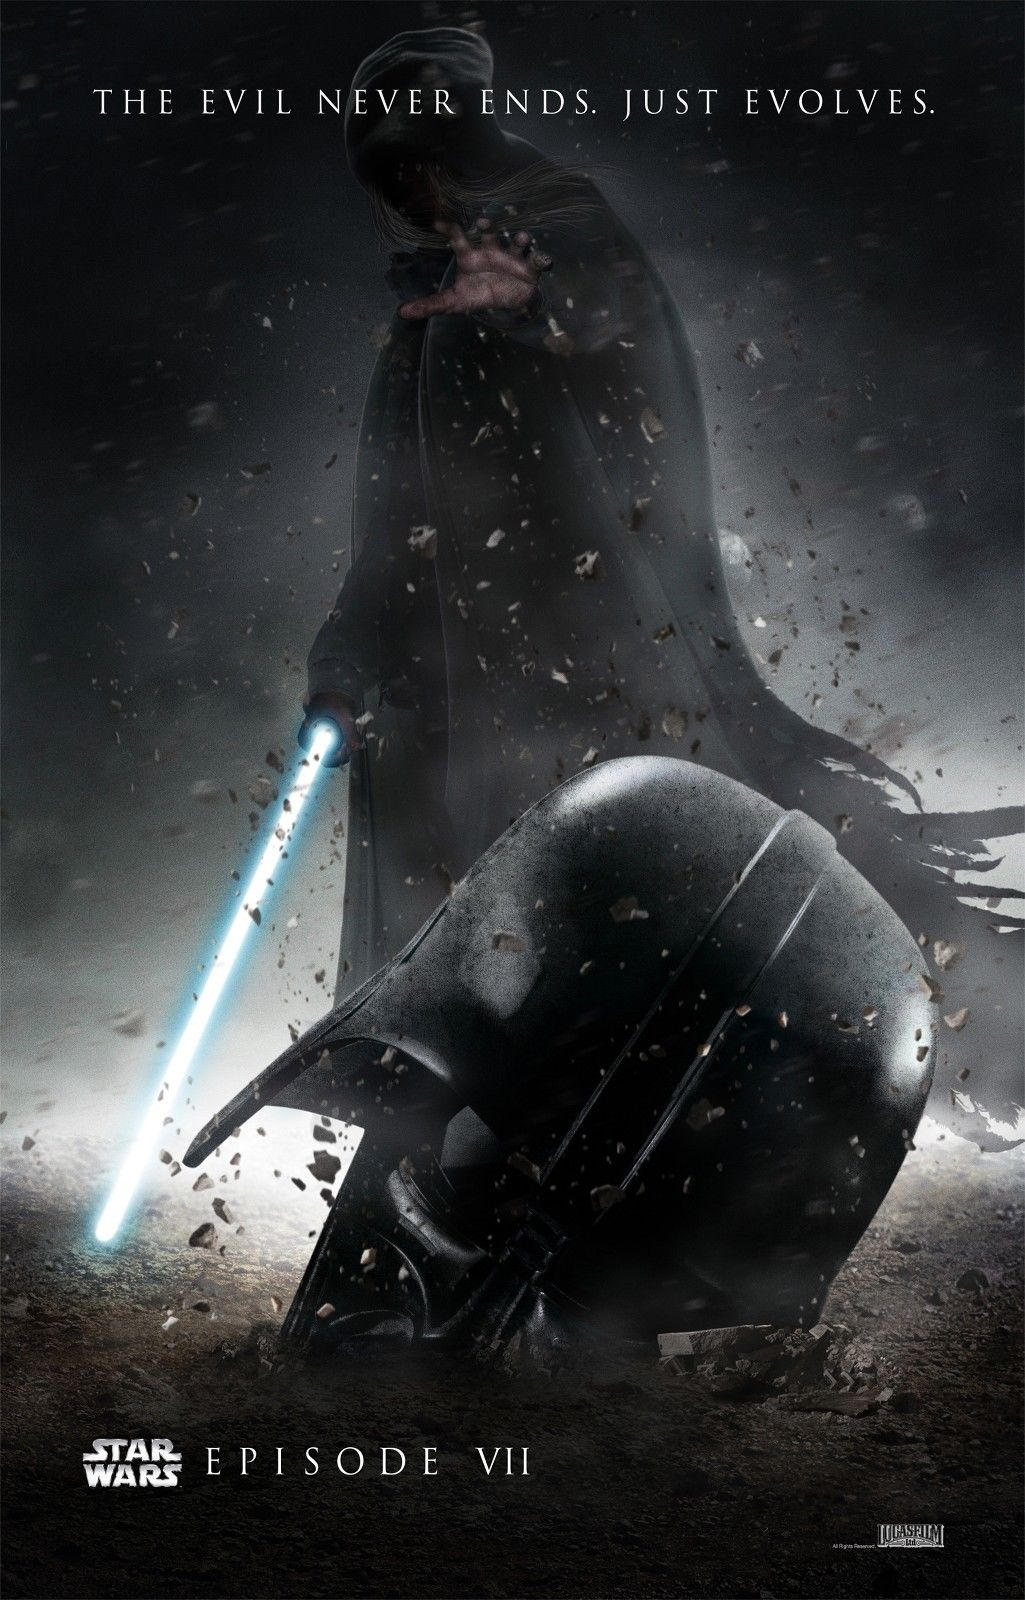 posters usa picture - more detailed picture about star wars